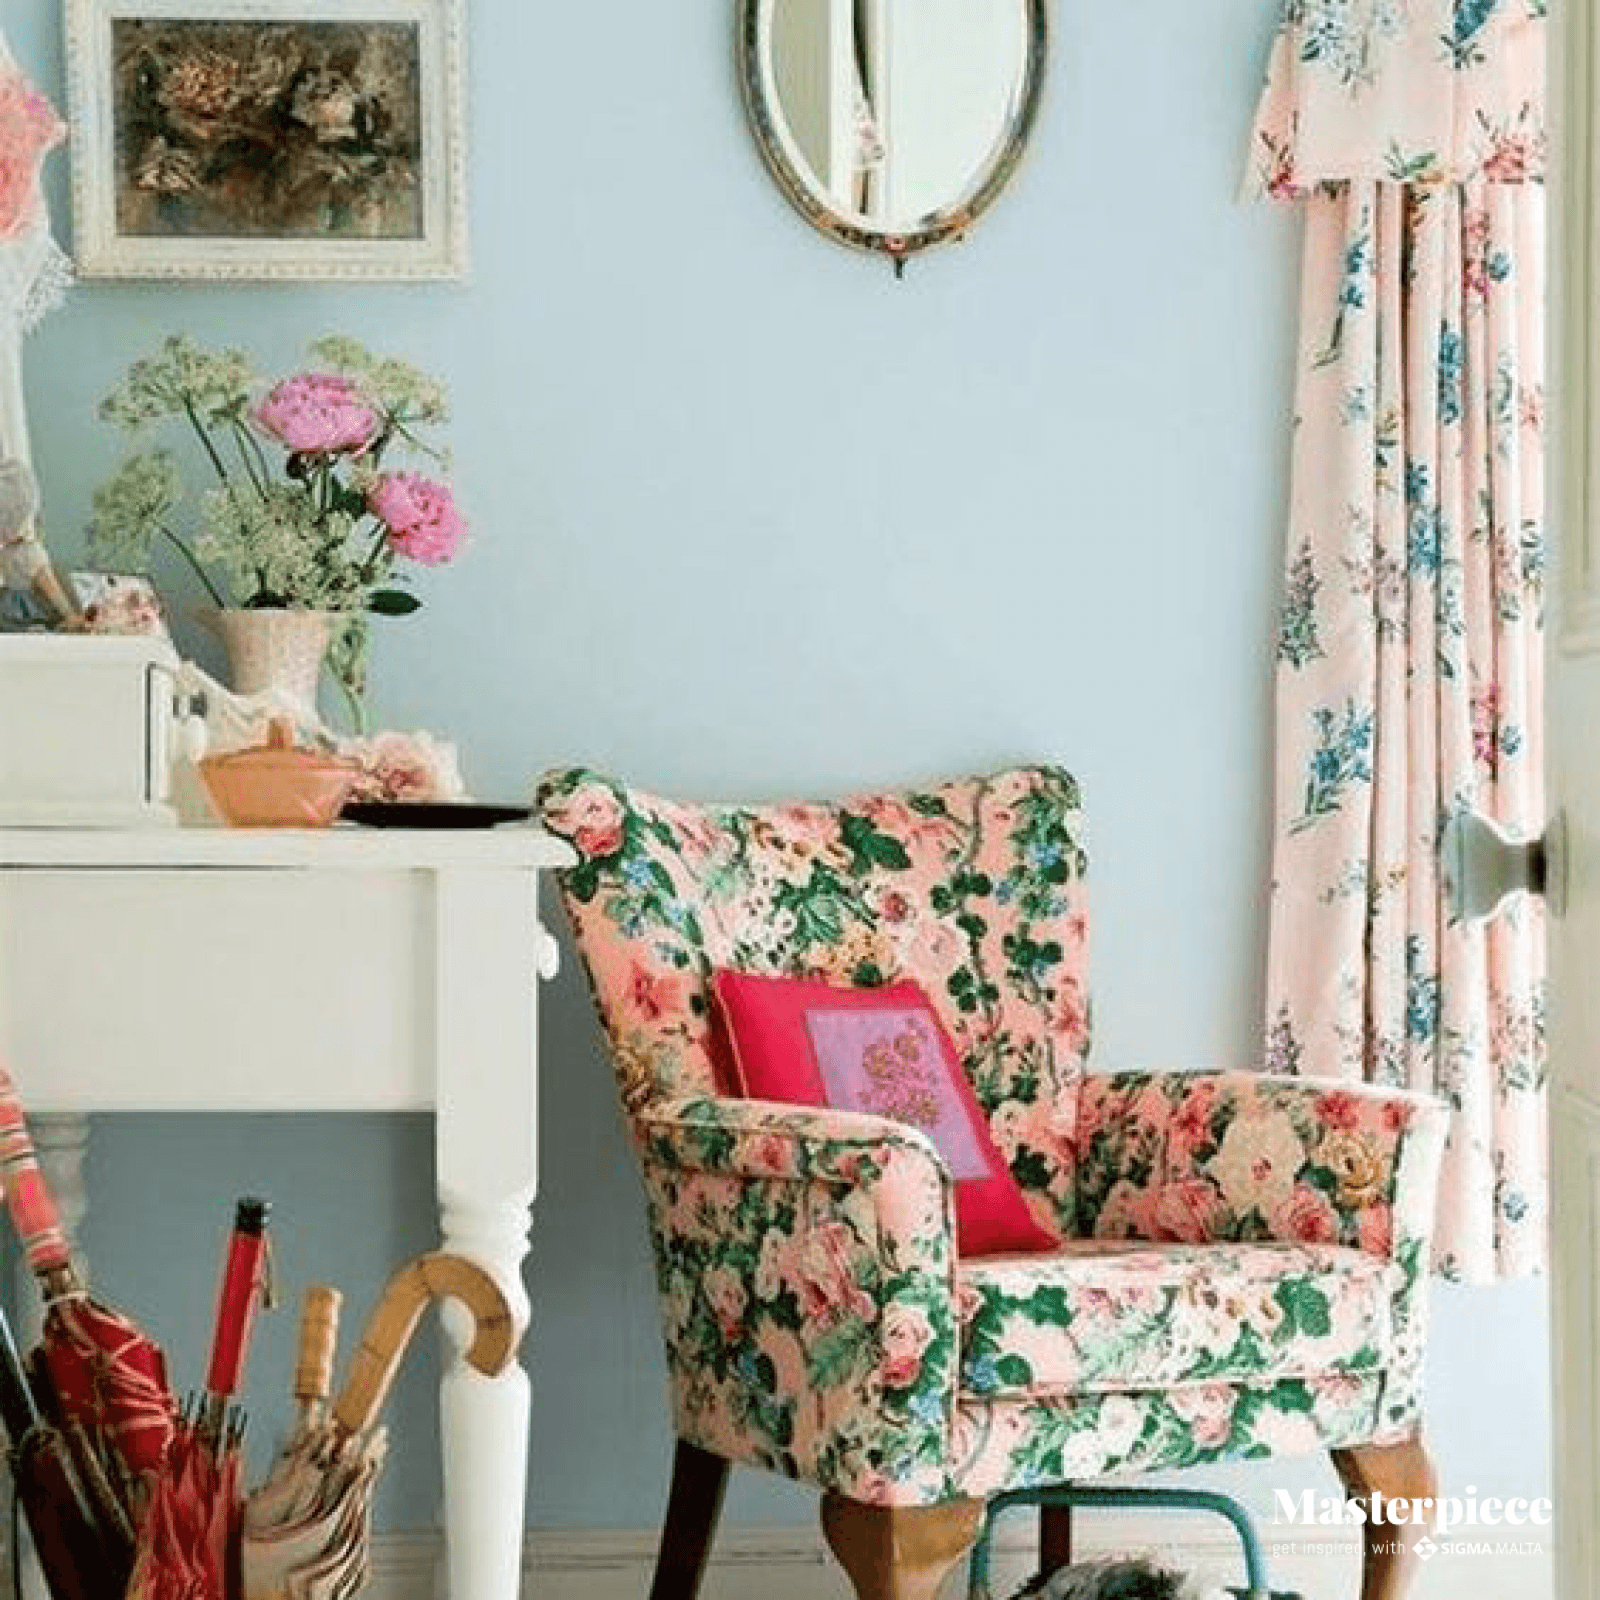 Flowers and Vintage </br><span> Living room </span>